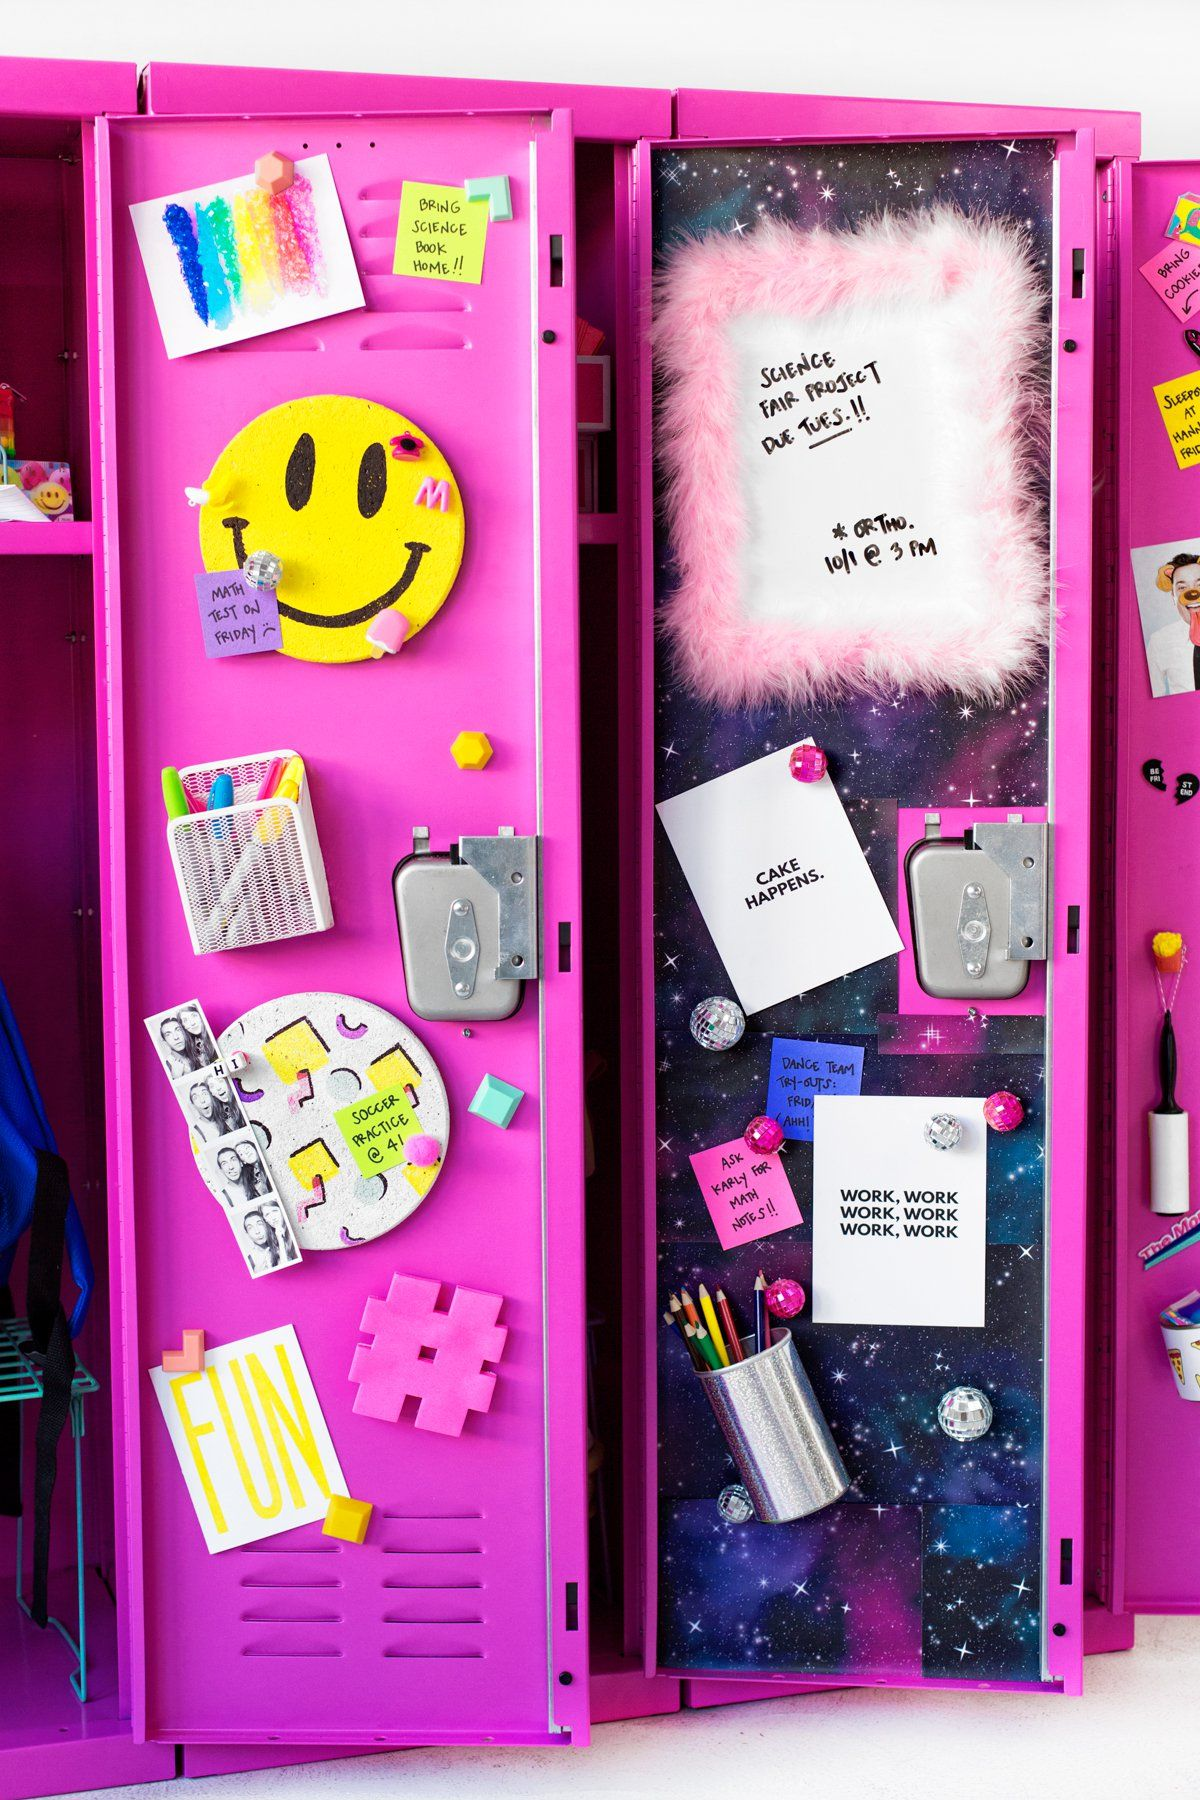 Diy Locker Decor Ideas Studio Diy School Locker Decorations Locker Decorations Diy Diy Locker